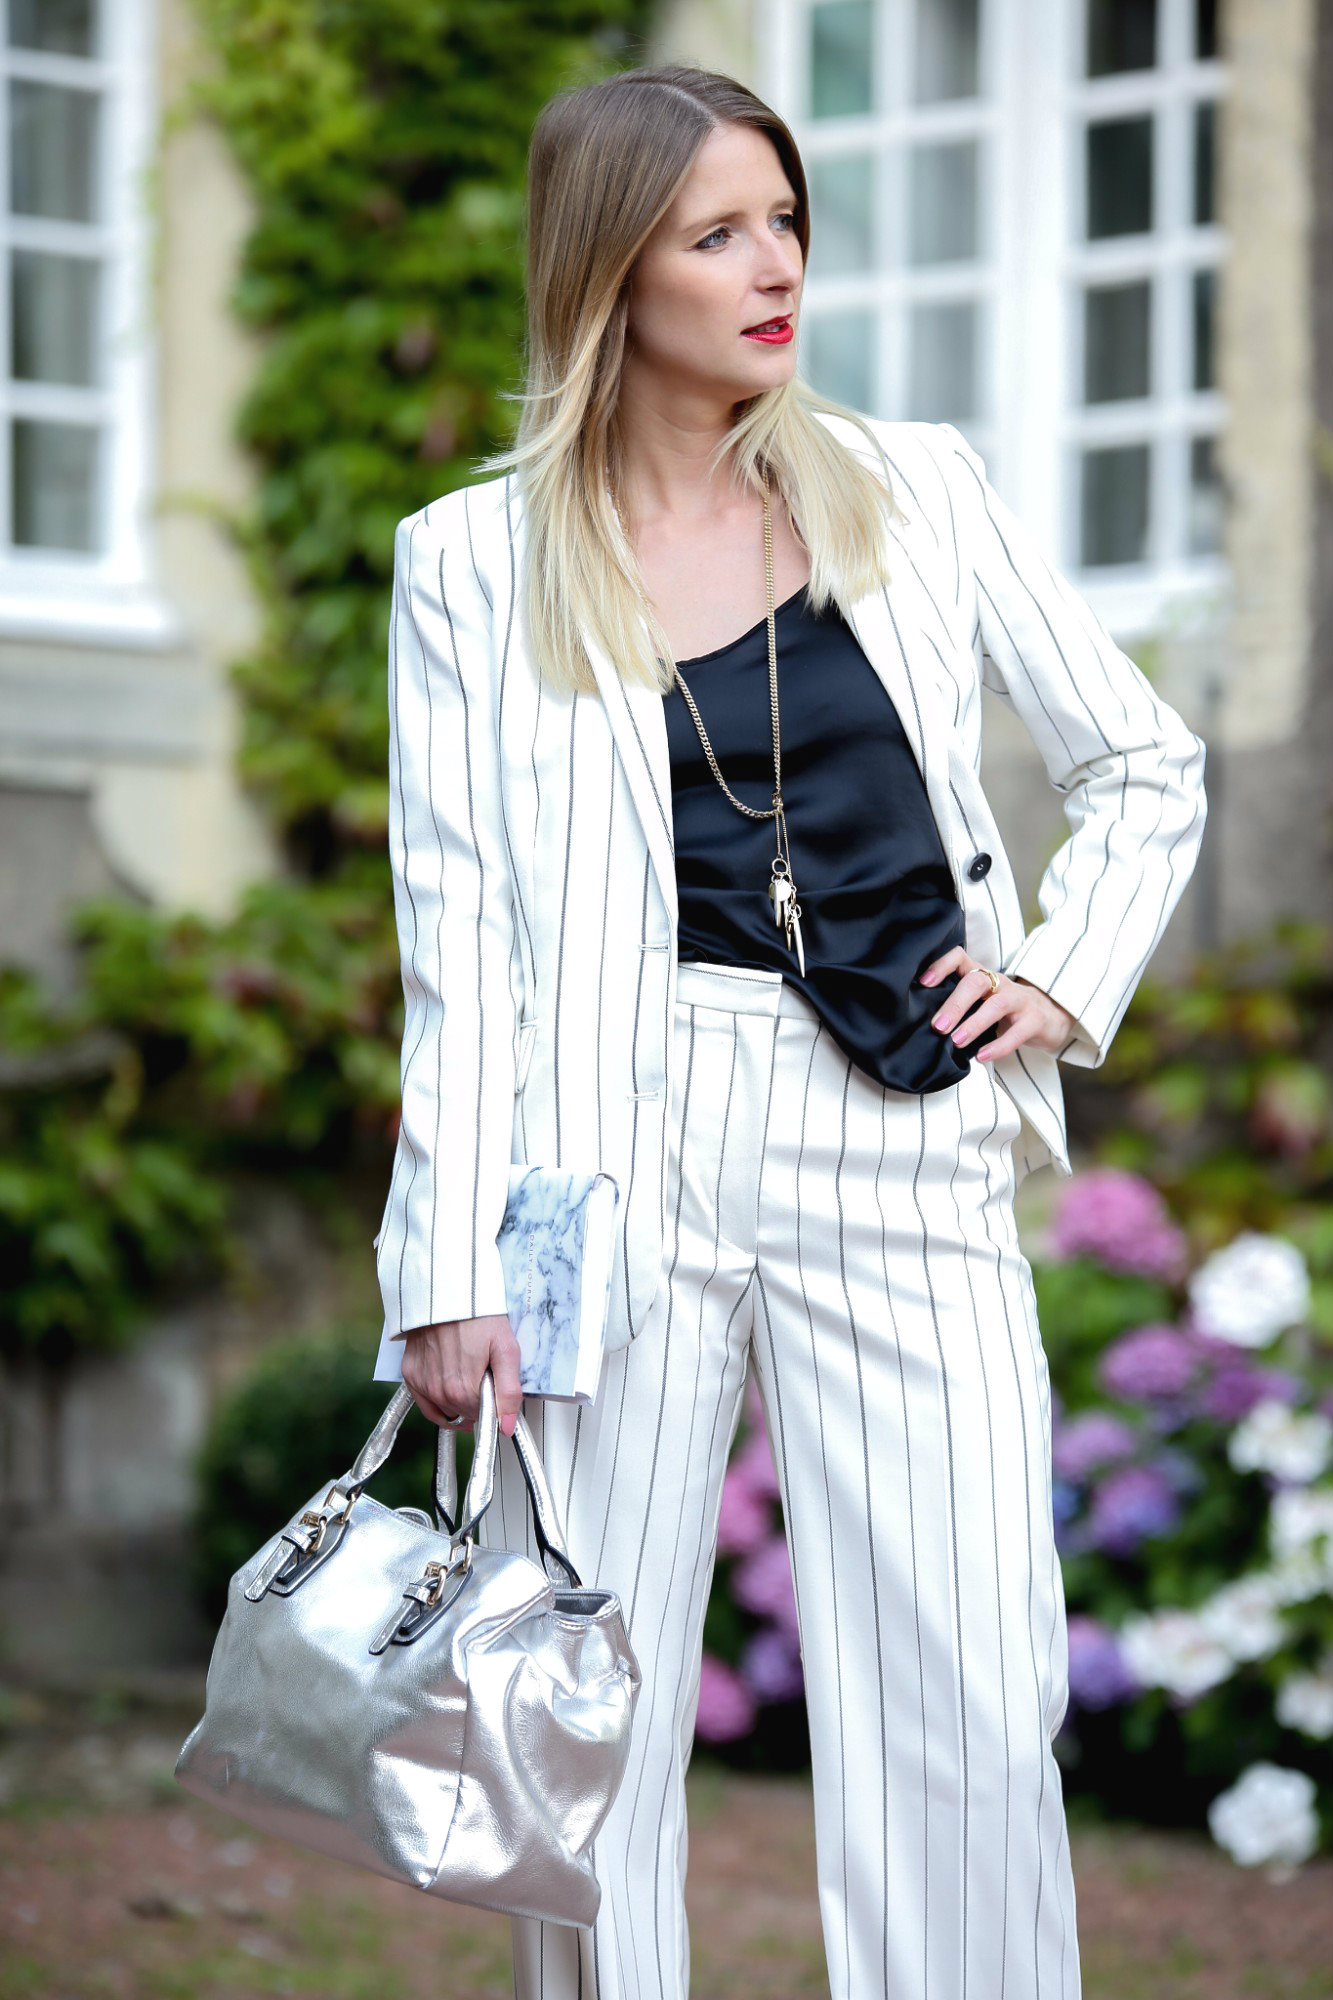 MOD-by-Monique-Looks-Girl-Boss-Pinstriped-Suit-3-1-pix